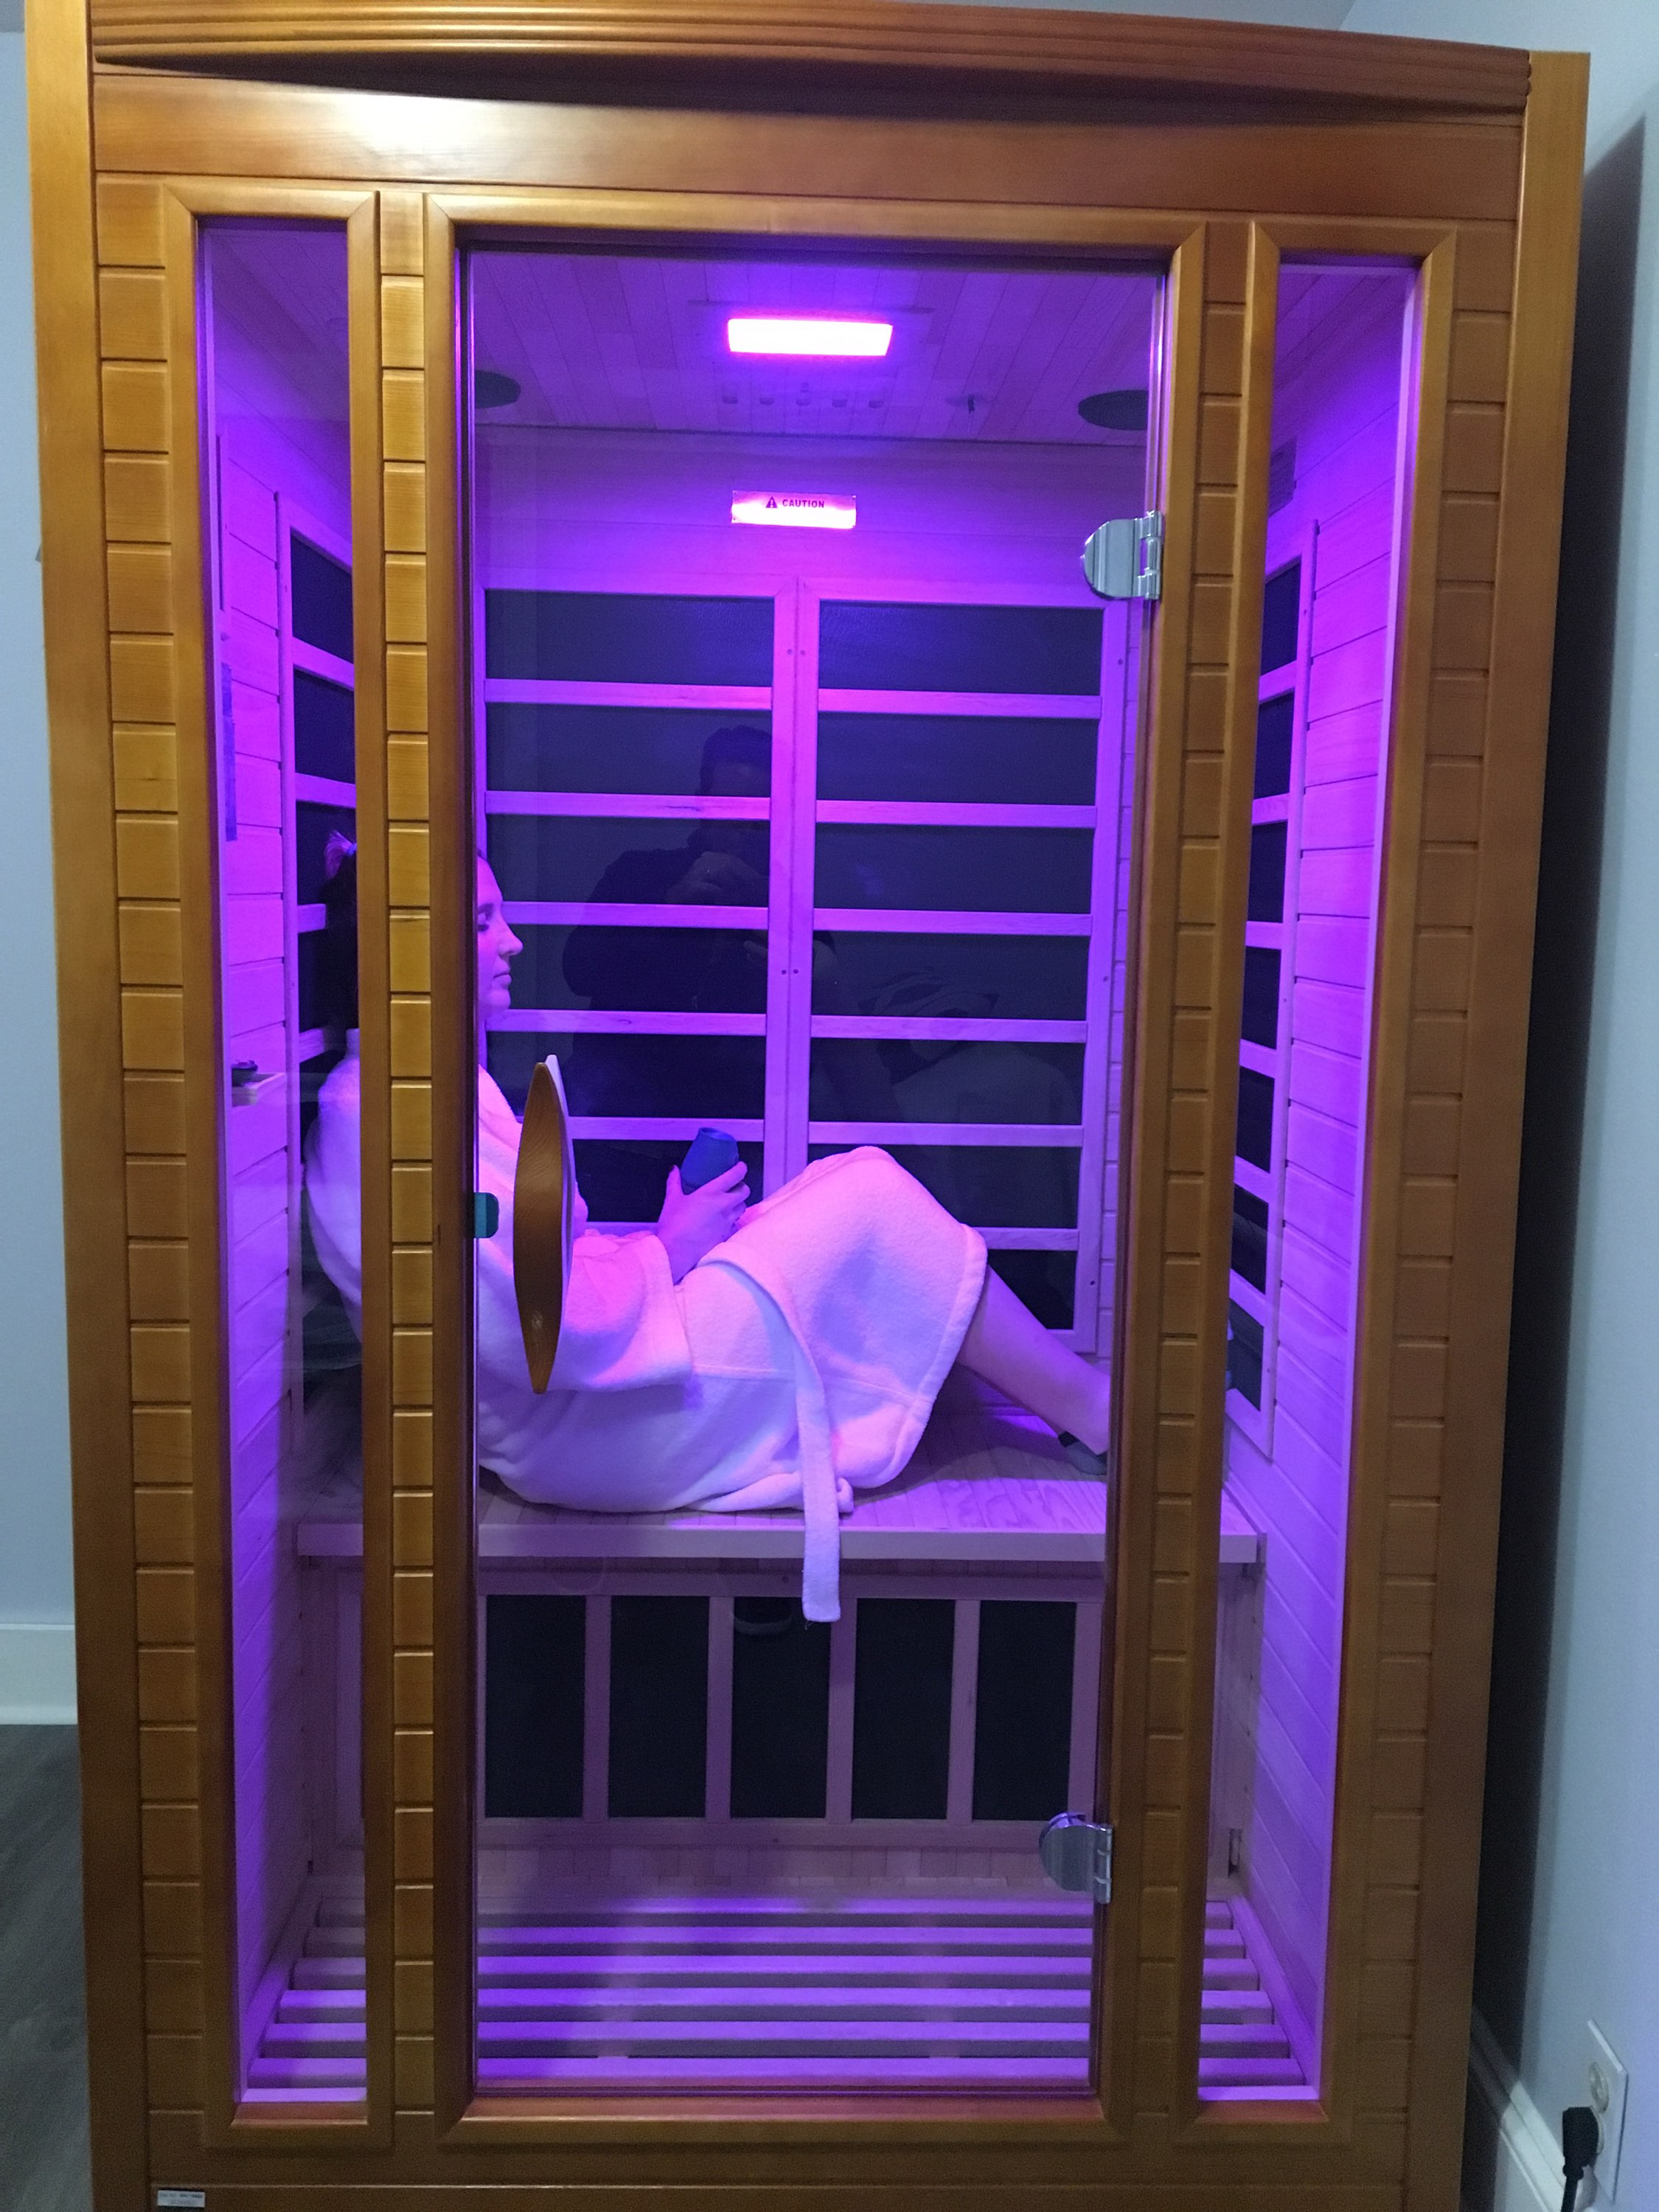 Suburban Cryotherapy provides infrared sauna therapy